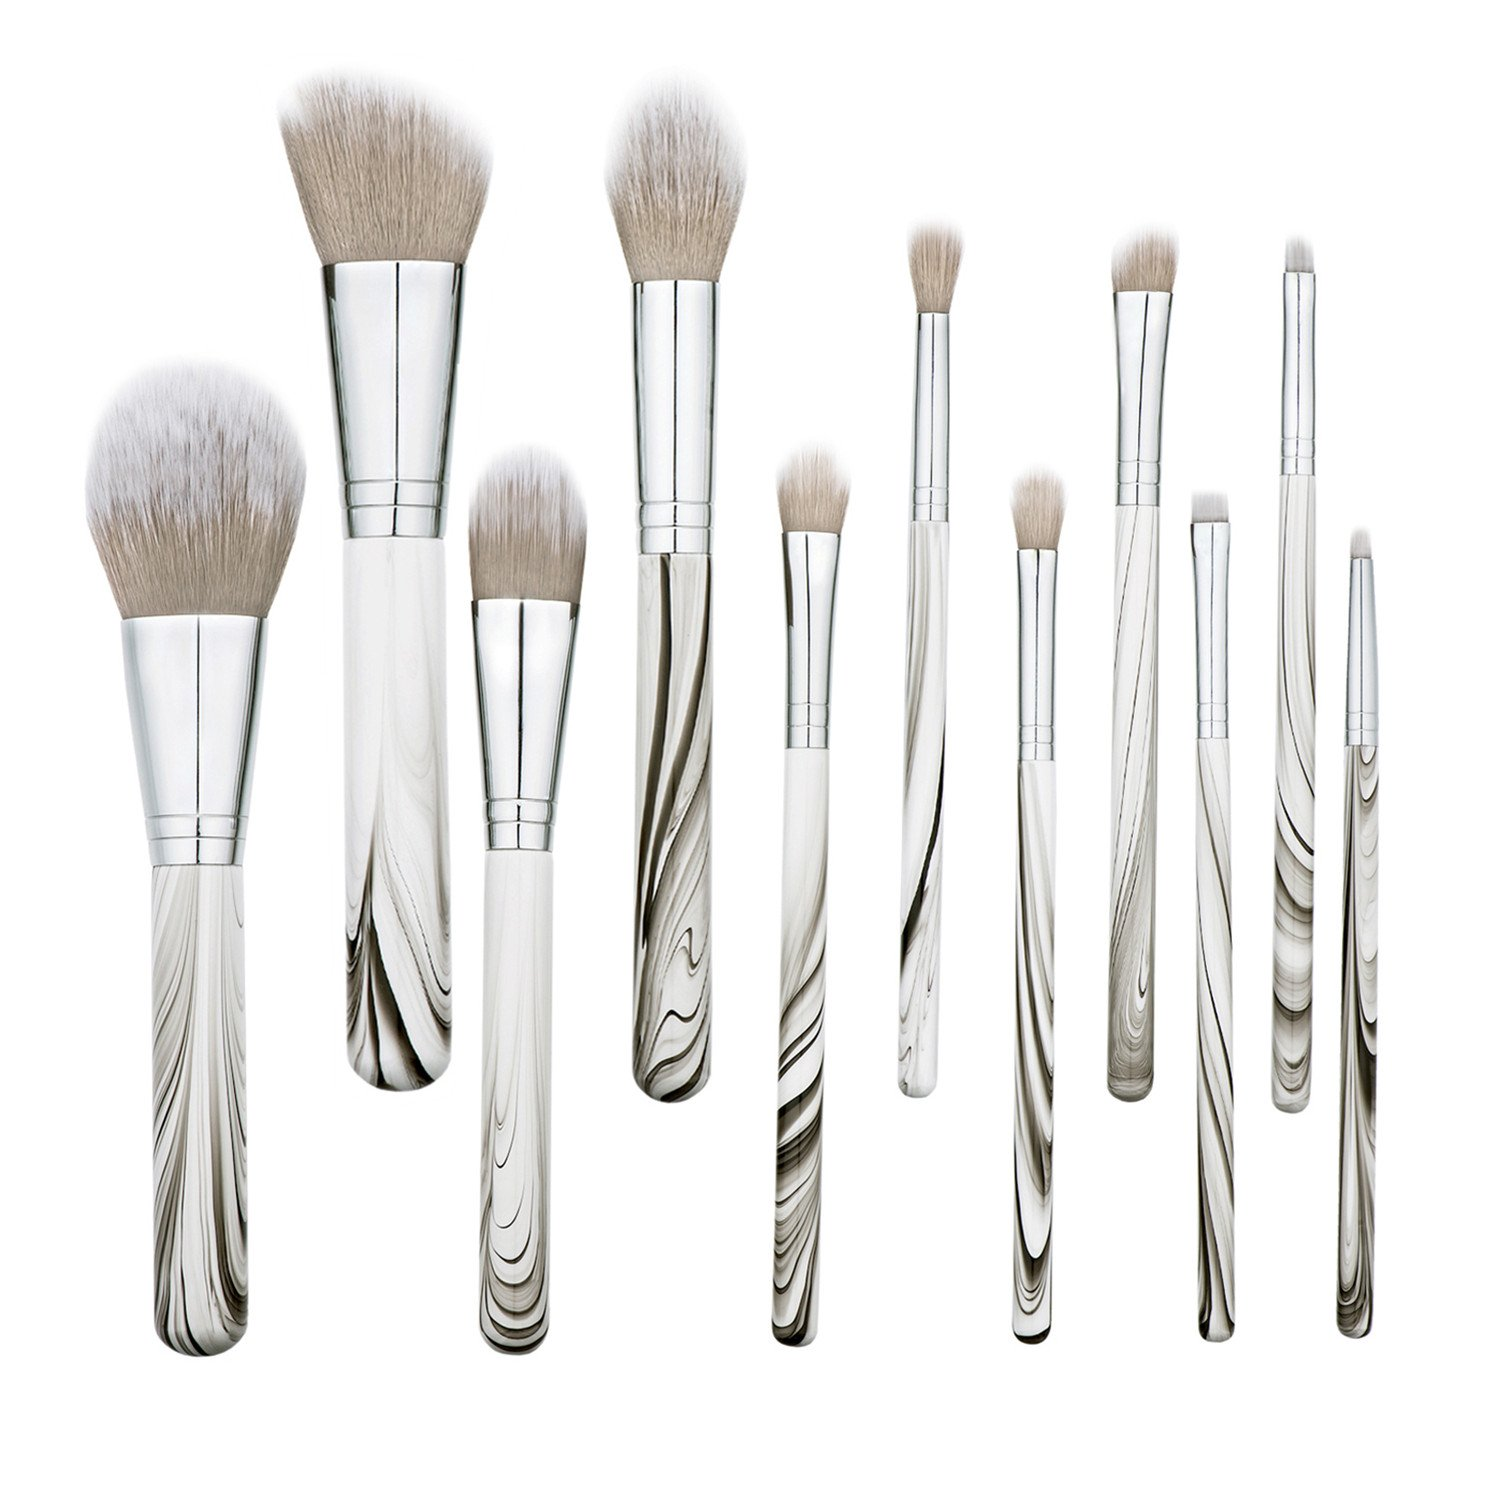 Beauty Kate Marble Wooden Makeup Brush Set 11 PCS New Professional Synthetic Big Powder Brush Face Eyeshadow Eyebrow Blush Contour Foundation Lip Kabuki Makeup Brush Beauty Tool